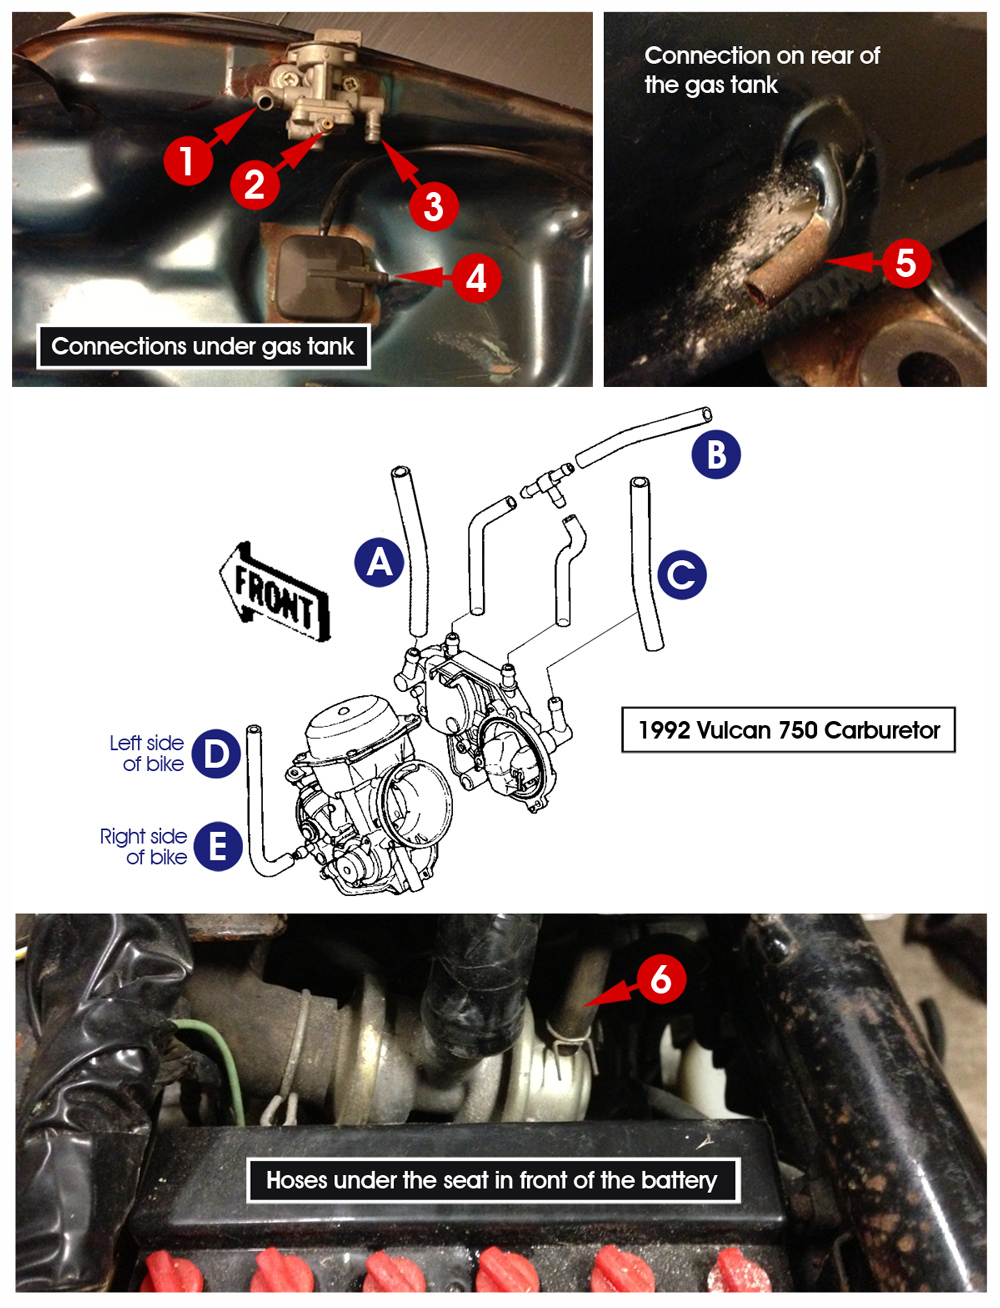 hight resolution of below is a image of the bottom of my fuel tank hose connections in front of the battery and the carburetor please help me connect the dots